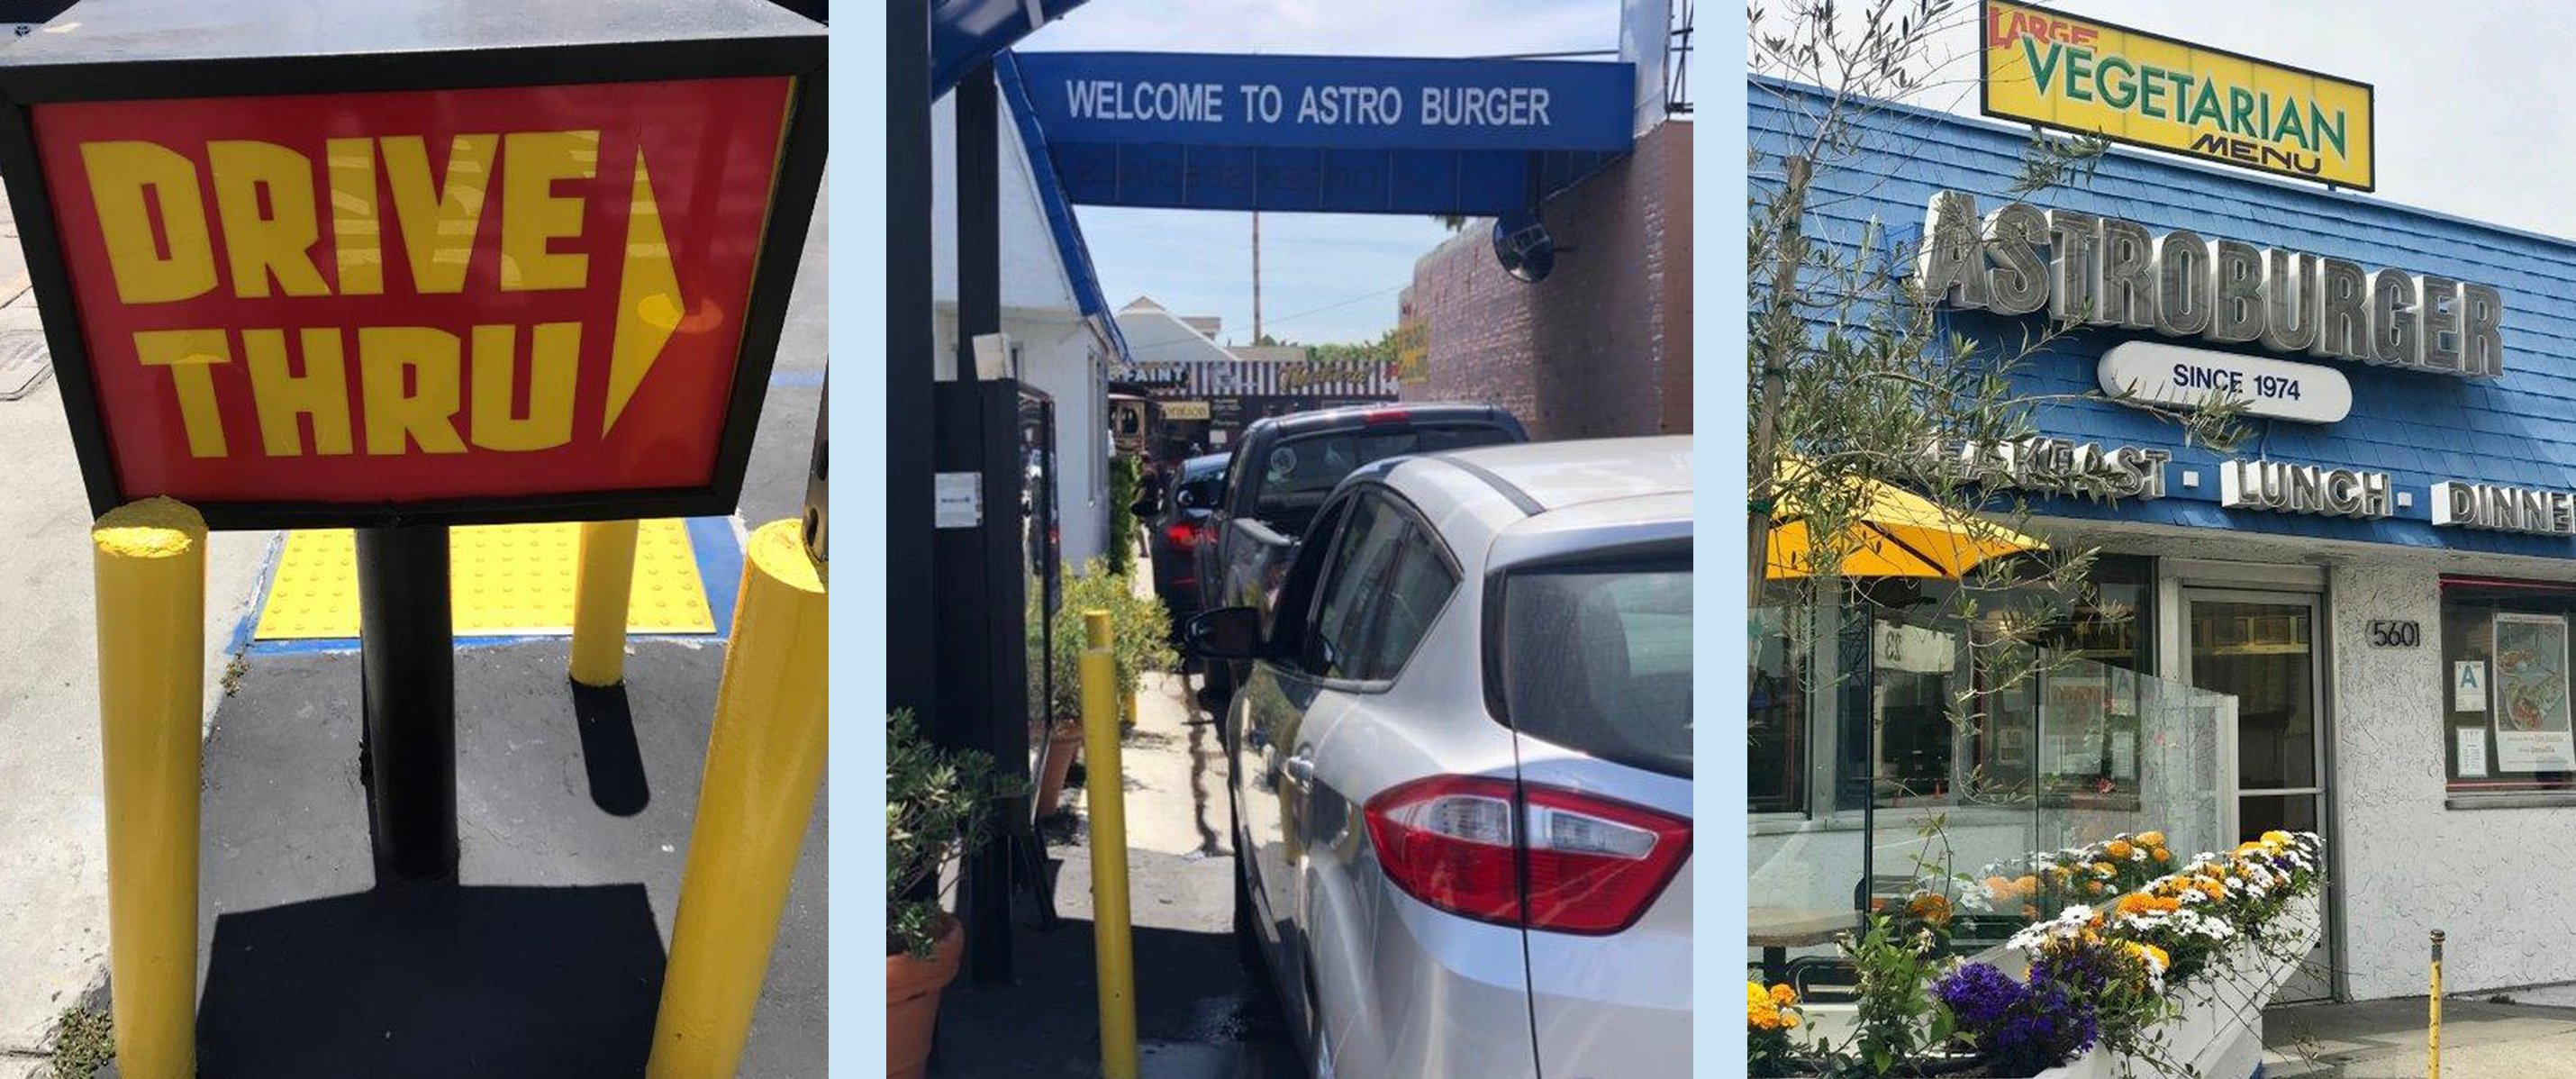 Collage photos - drive-thru and outside AstroBurger